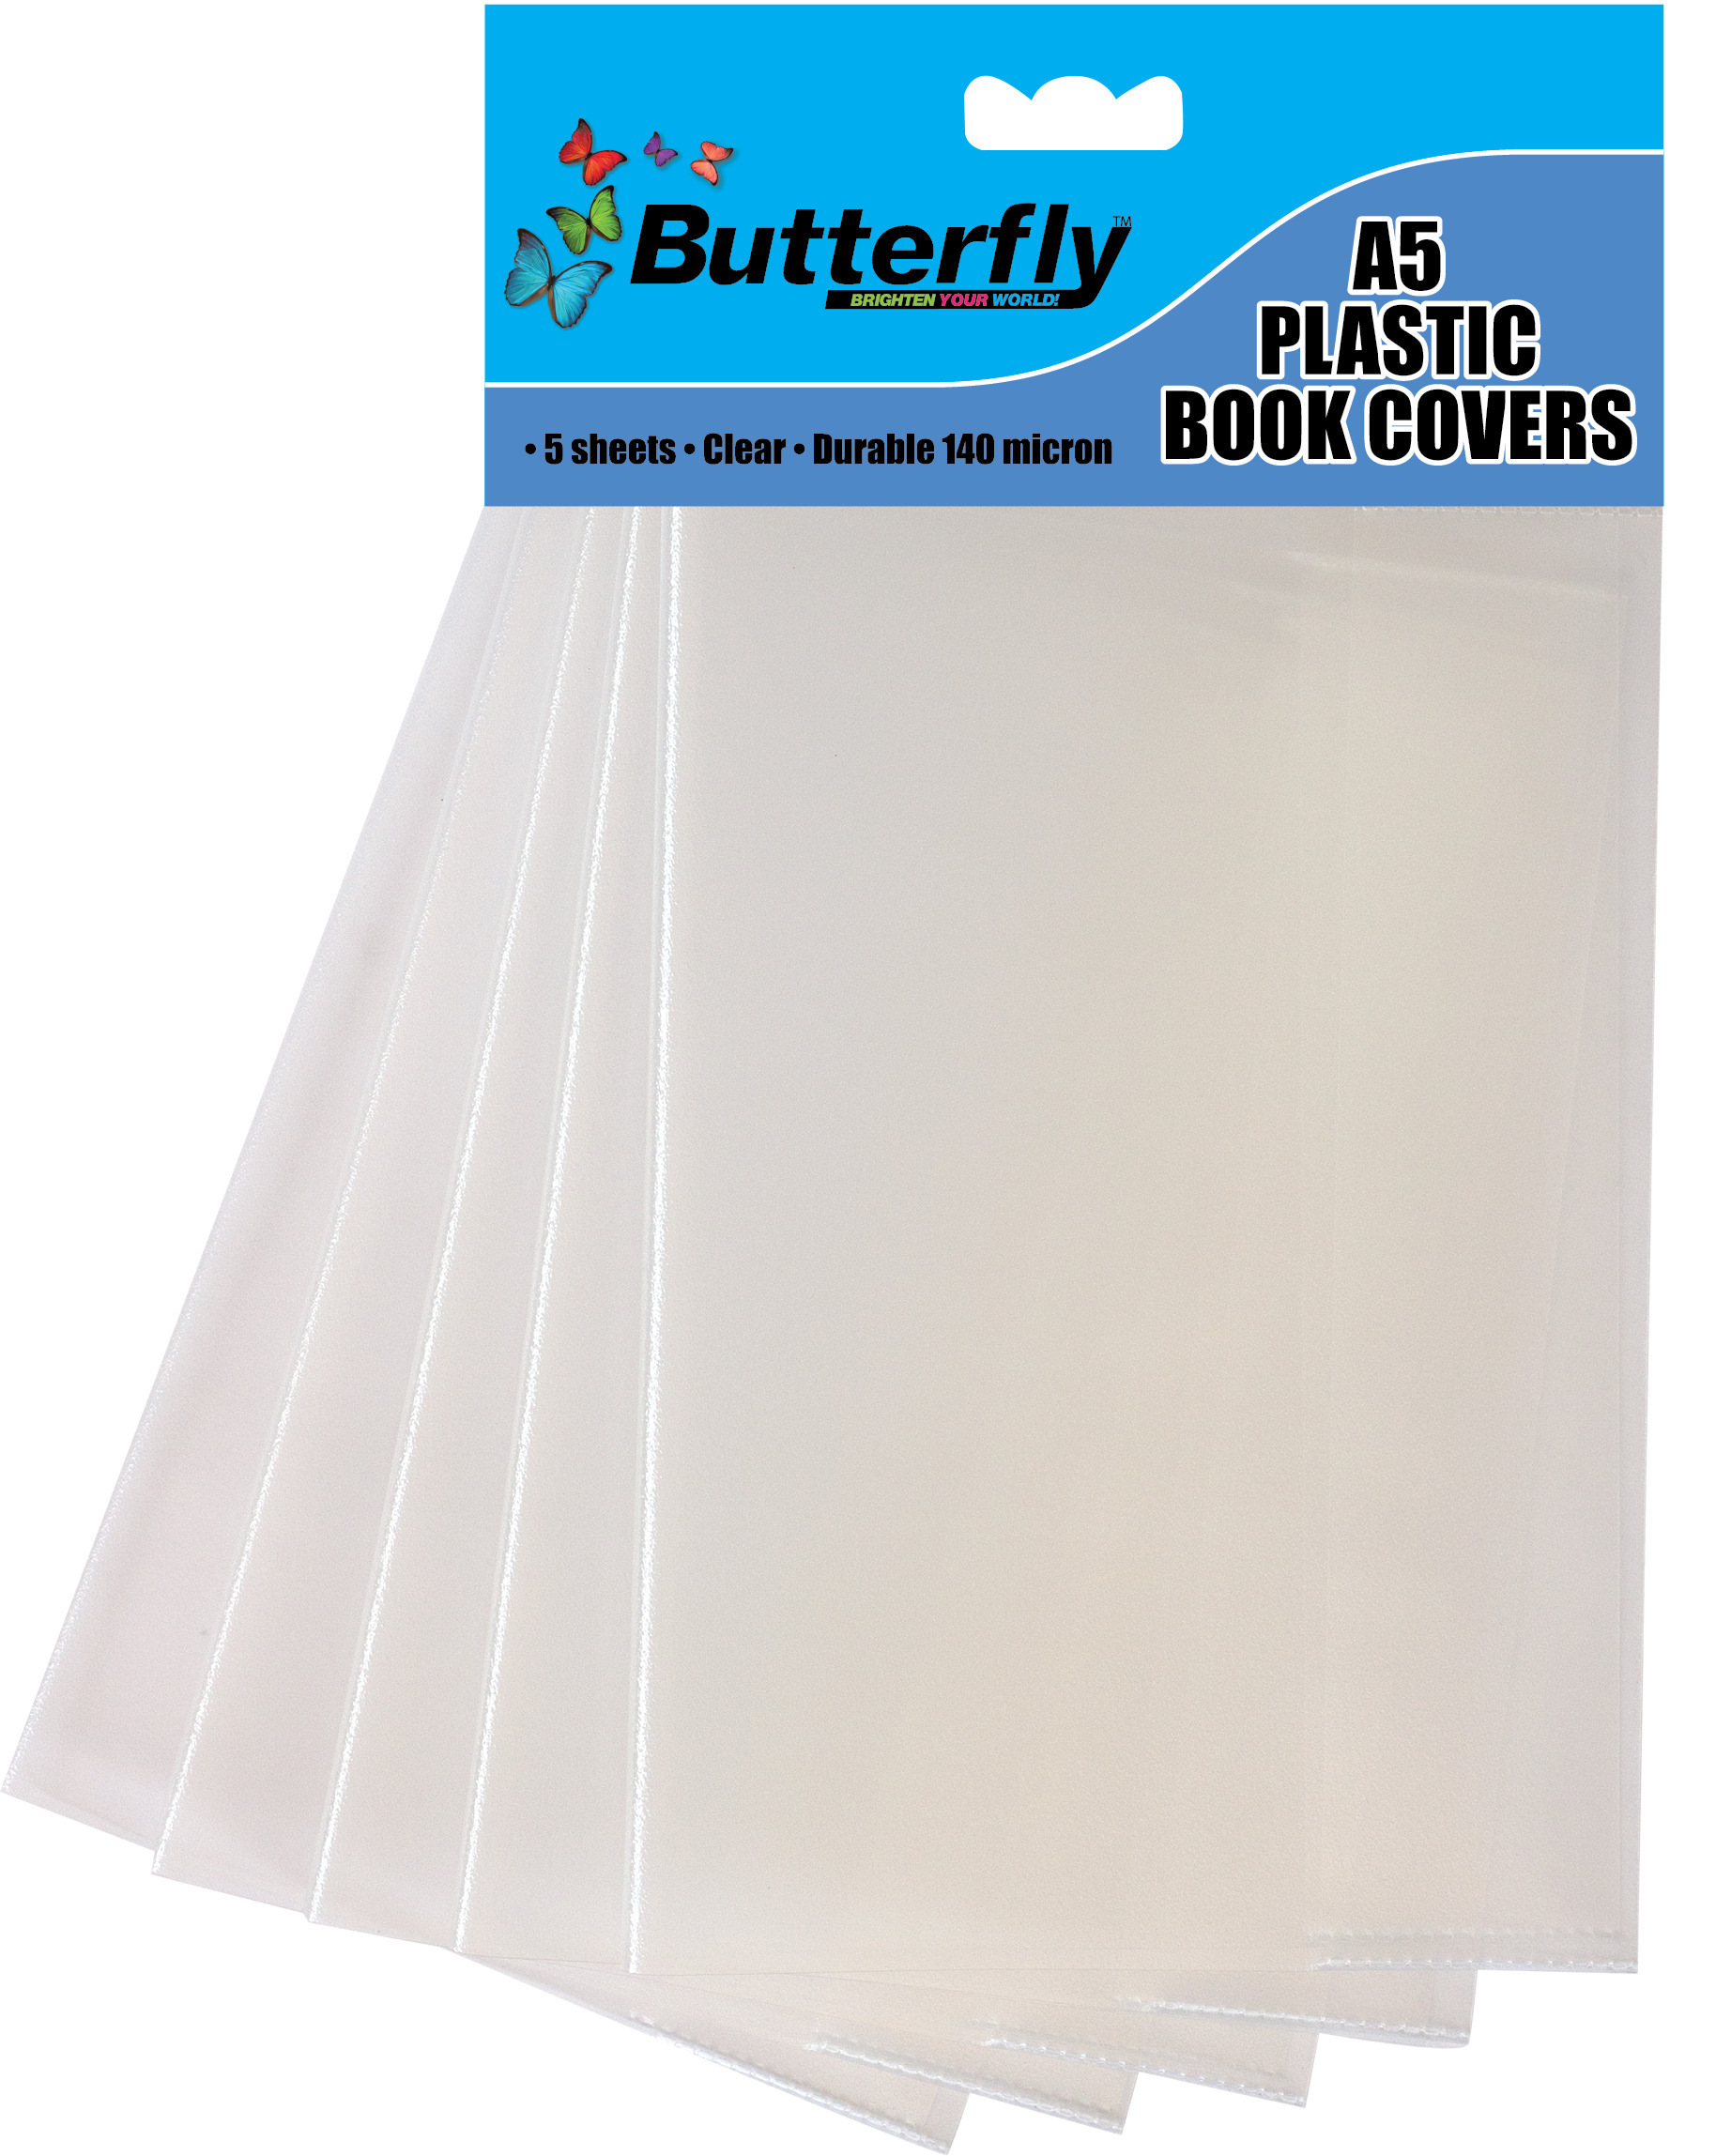 A5 Plastic Book Covers - Clear - 5 Pack 140 Micron